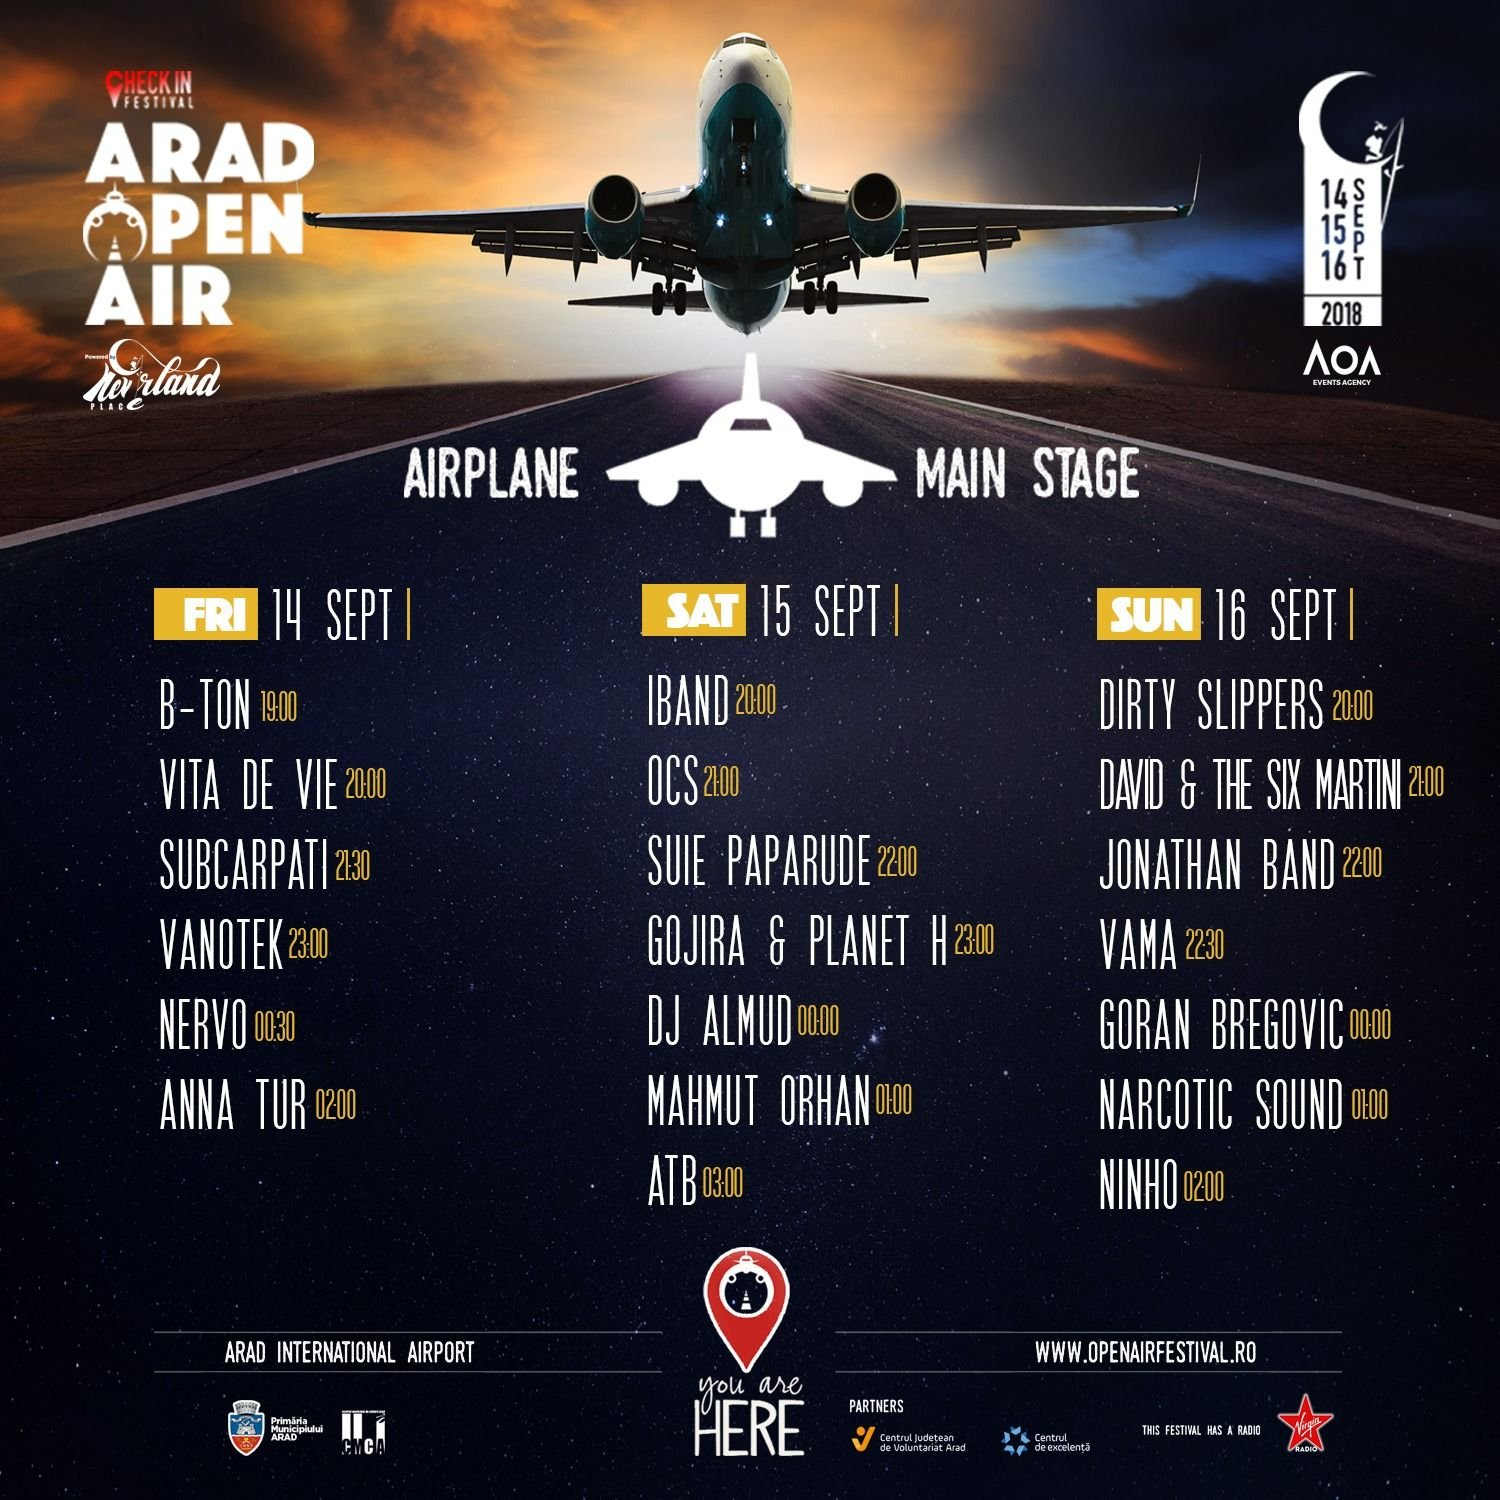 Arad Open Air Festival program